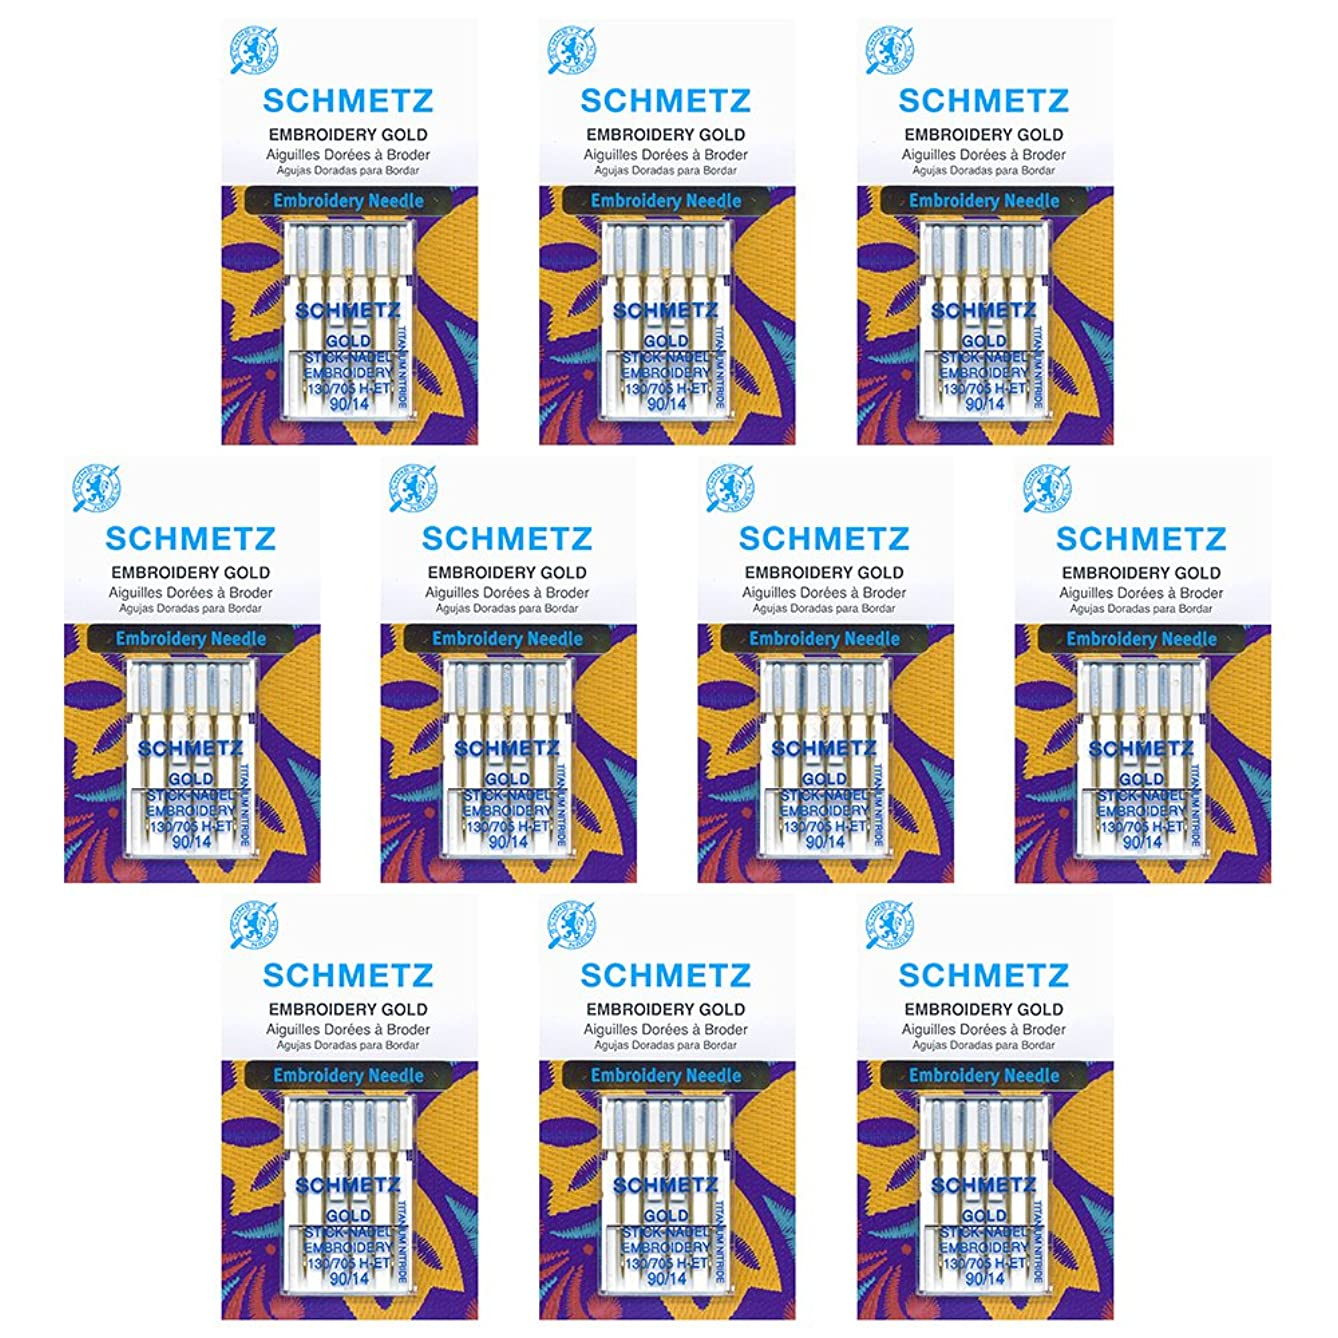 50 Schmetz Gold Embroidery Sewing Machine Needles - size?90/14 - Box of 10 cards